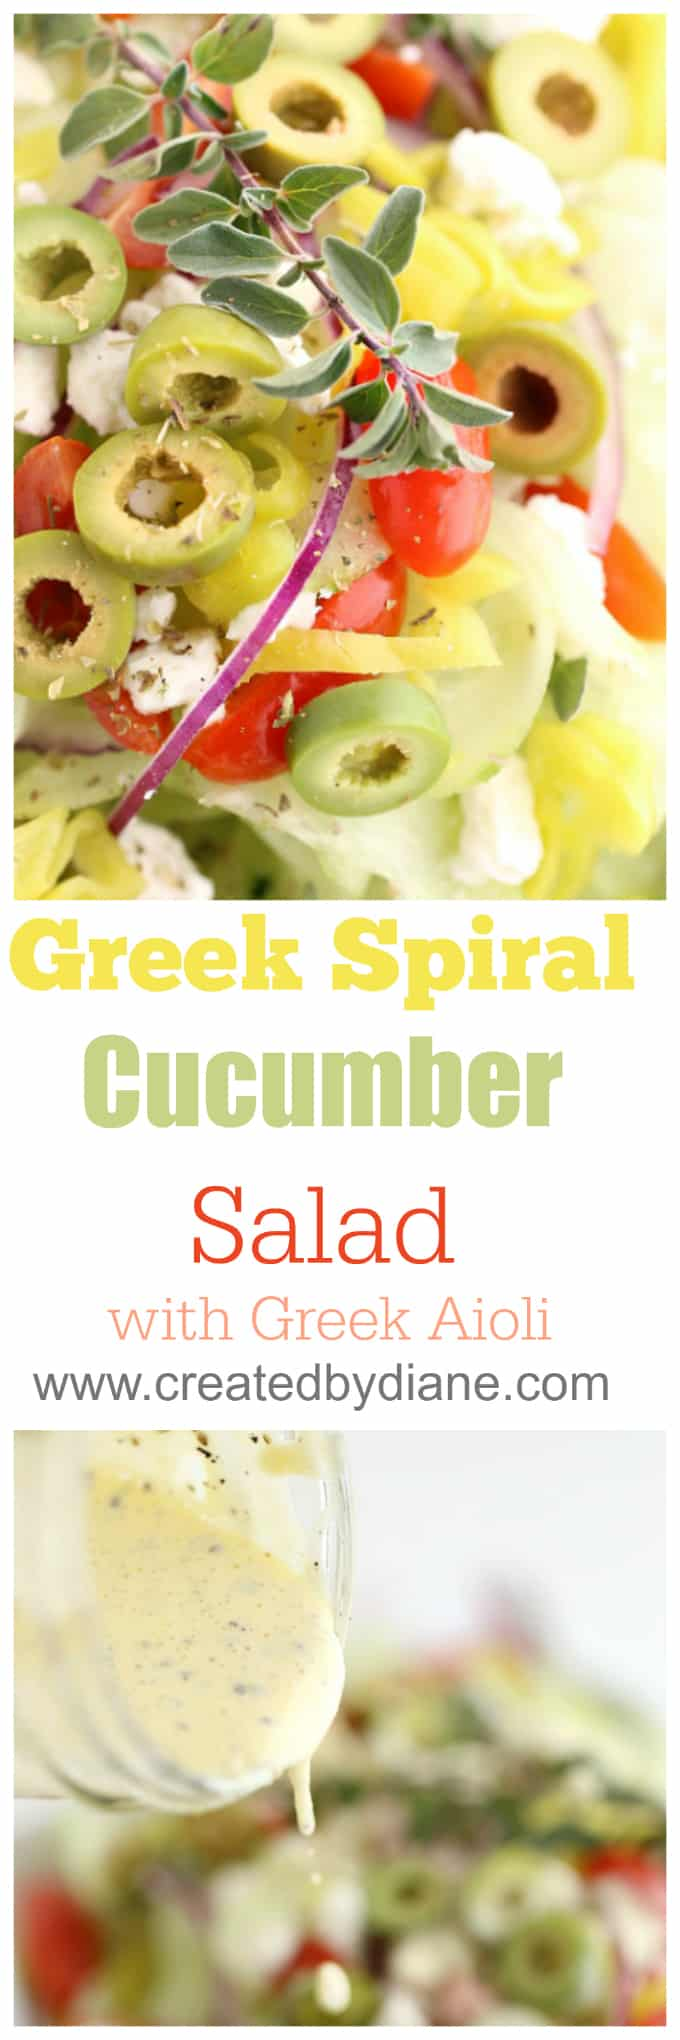 Greek Spiral Cucumber salad with Greek Aioli www.createdbydiane.com